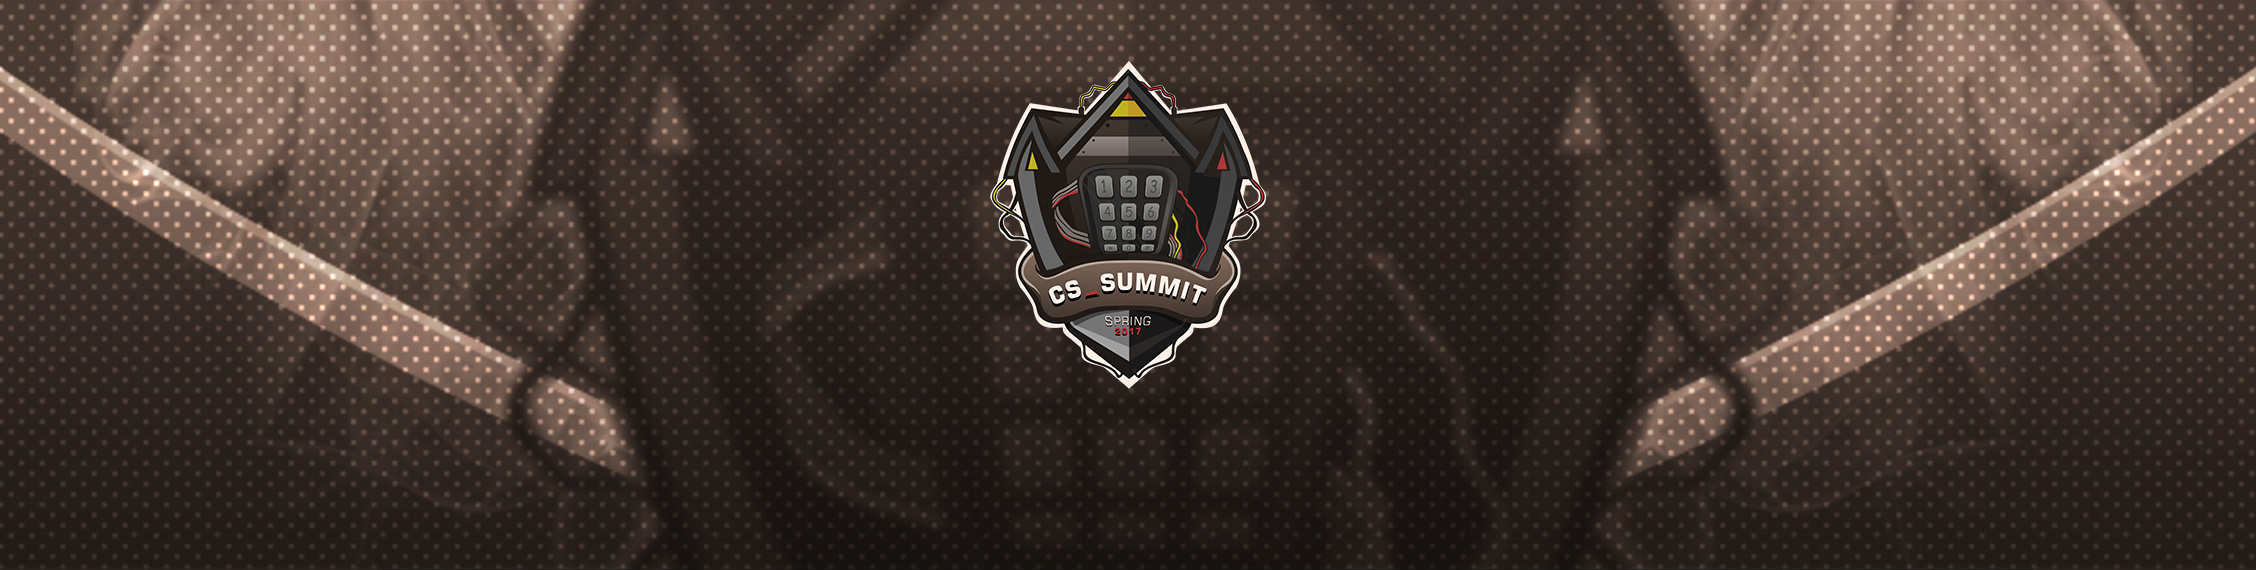 cs_summit